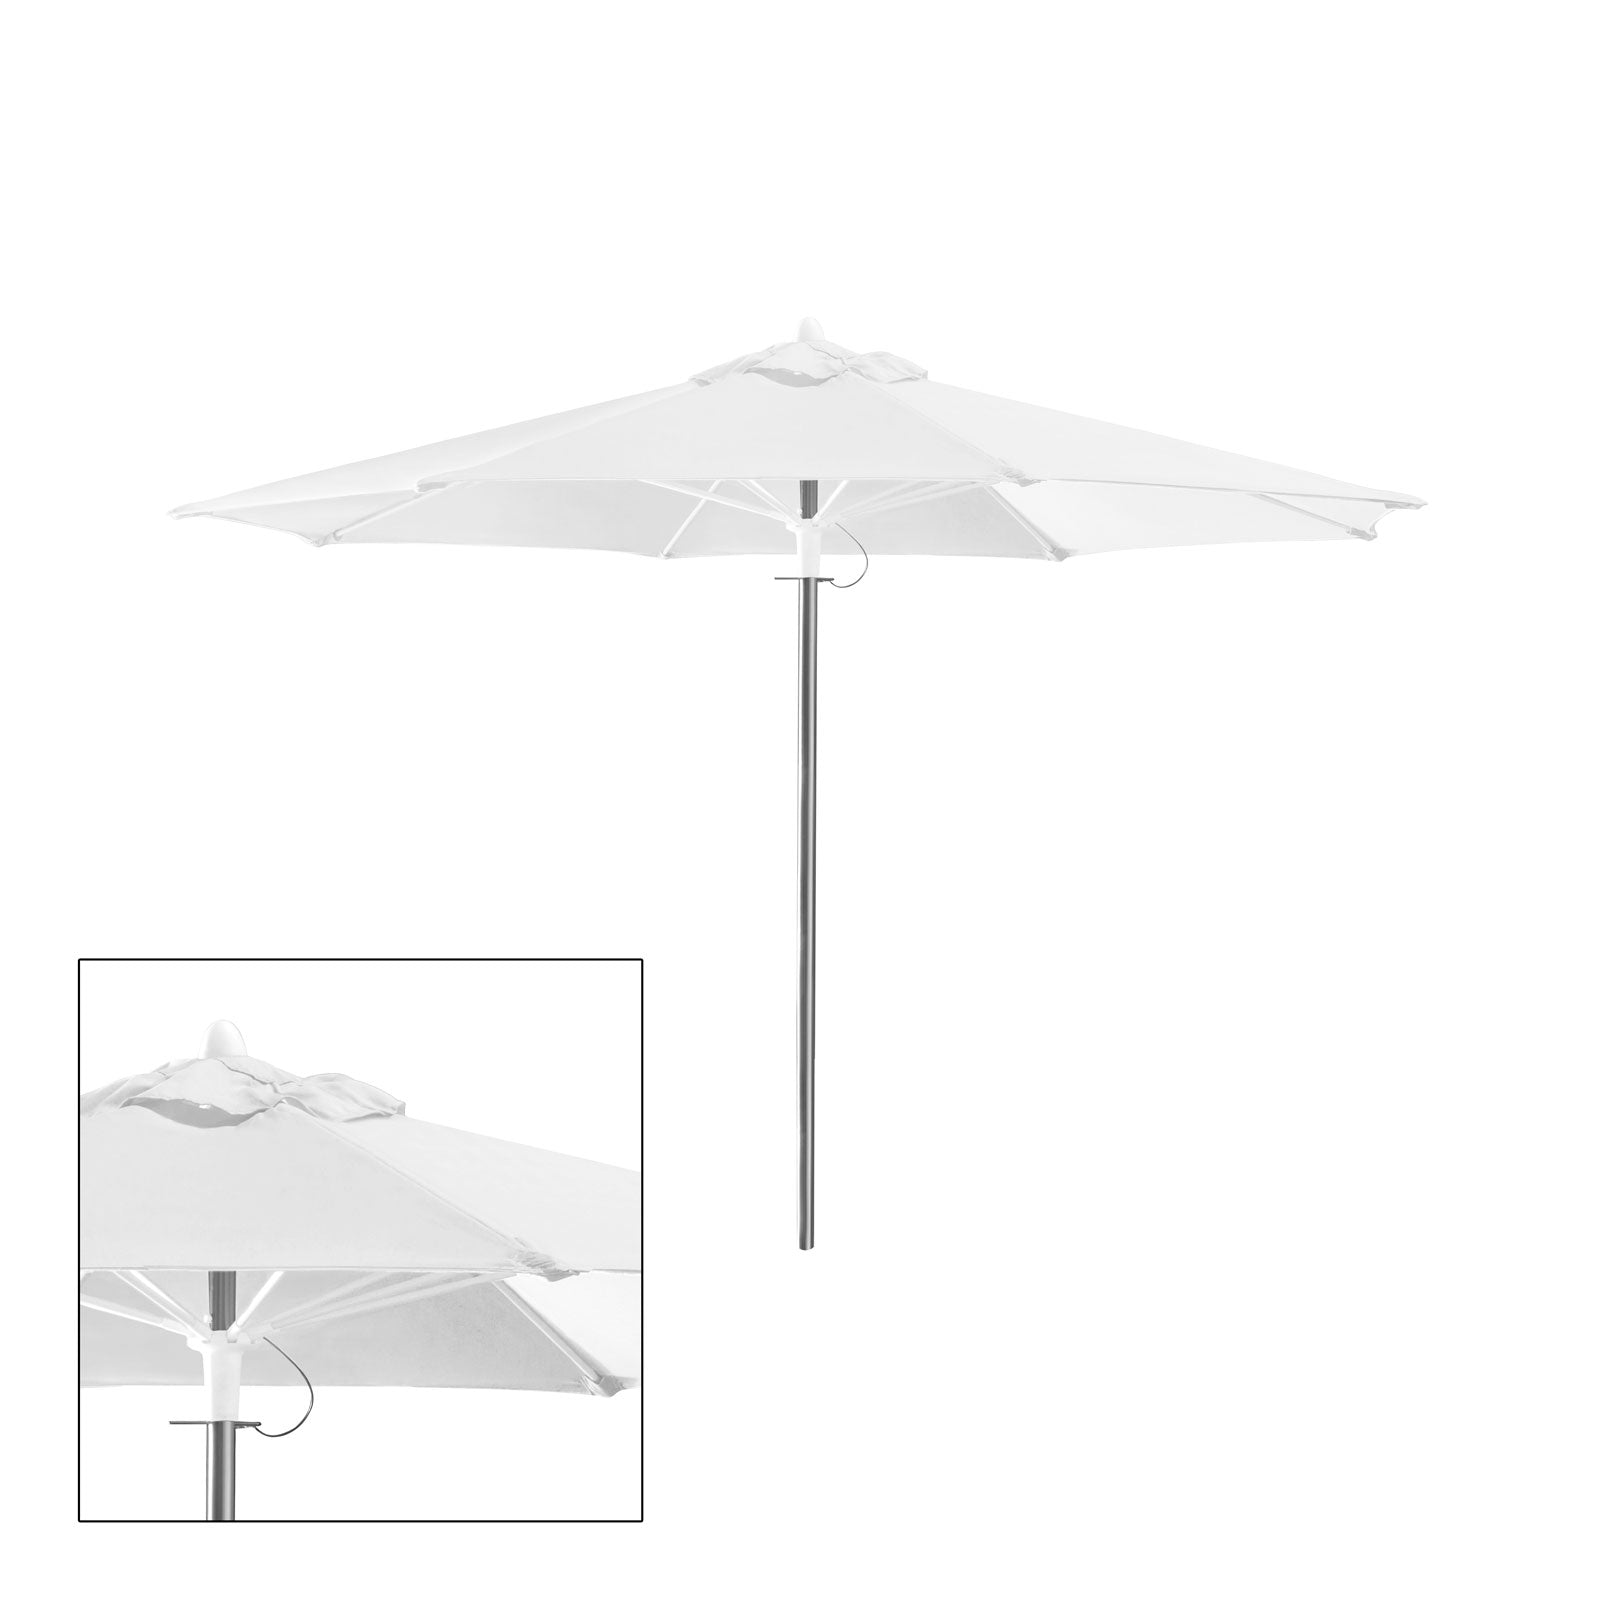 Source Furniture Source Furniture Rio 9' Round Single Vented Umbrella - Rattan Imports